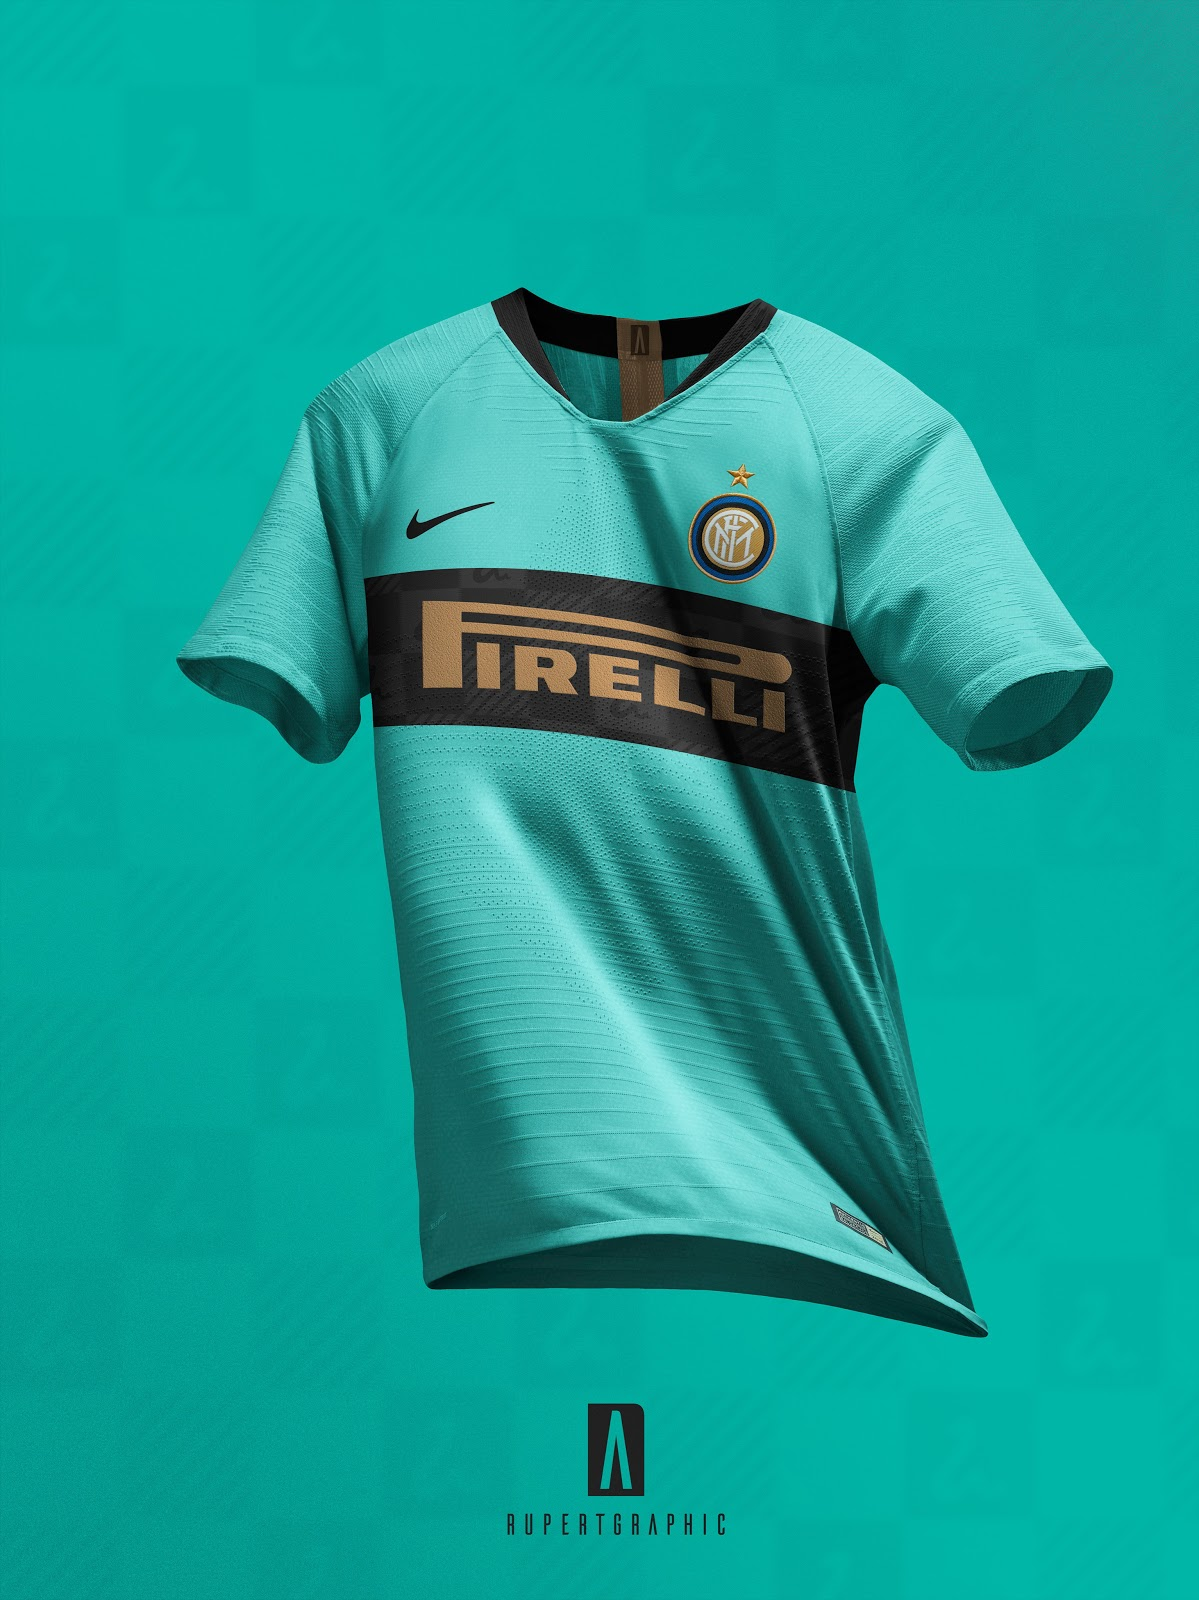 size 40 6a578 d5009 Nike Inter Milan 19-20 Away Kit Concept Based on Leaked Info ...